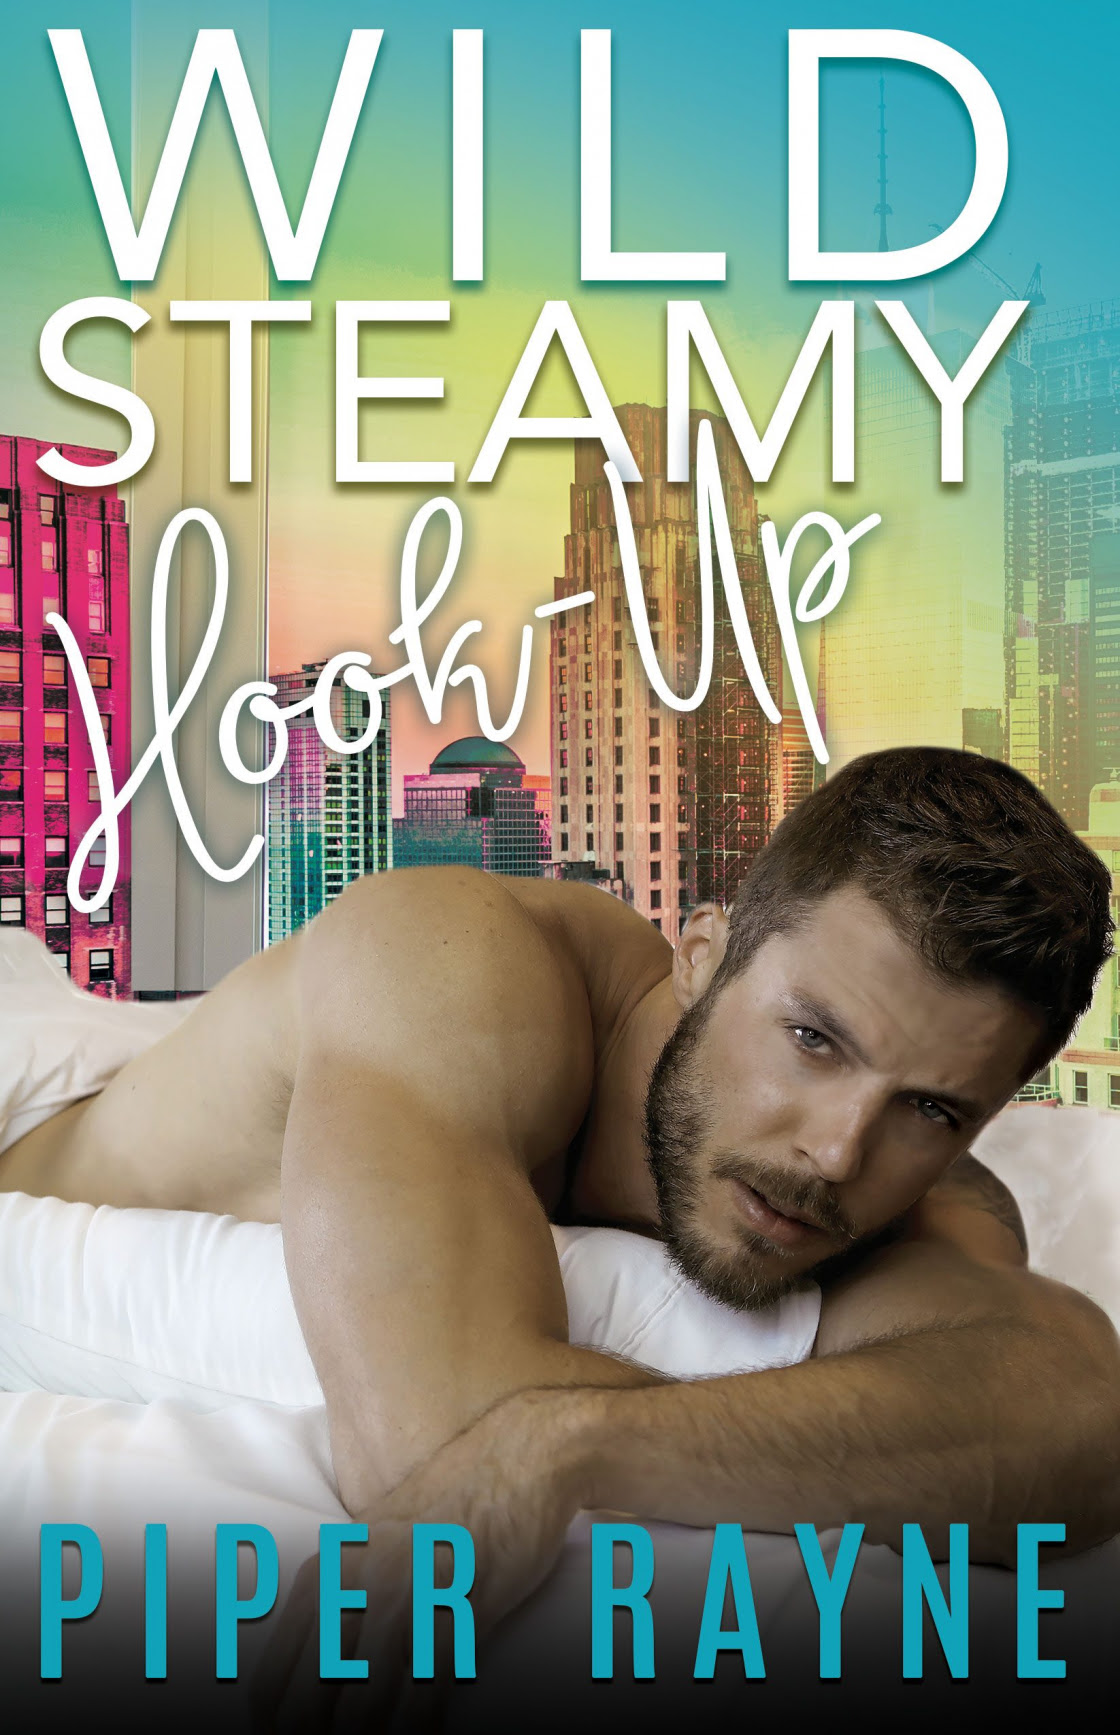 Wild Steamy Hook Up by Piper Rayne Release Blitz & Review